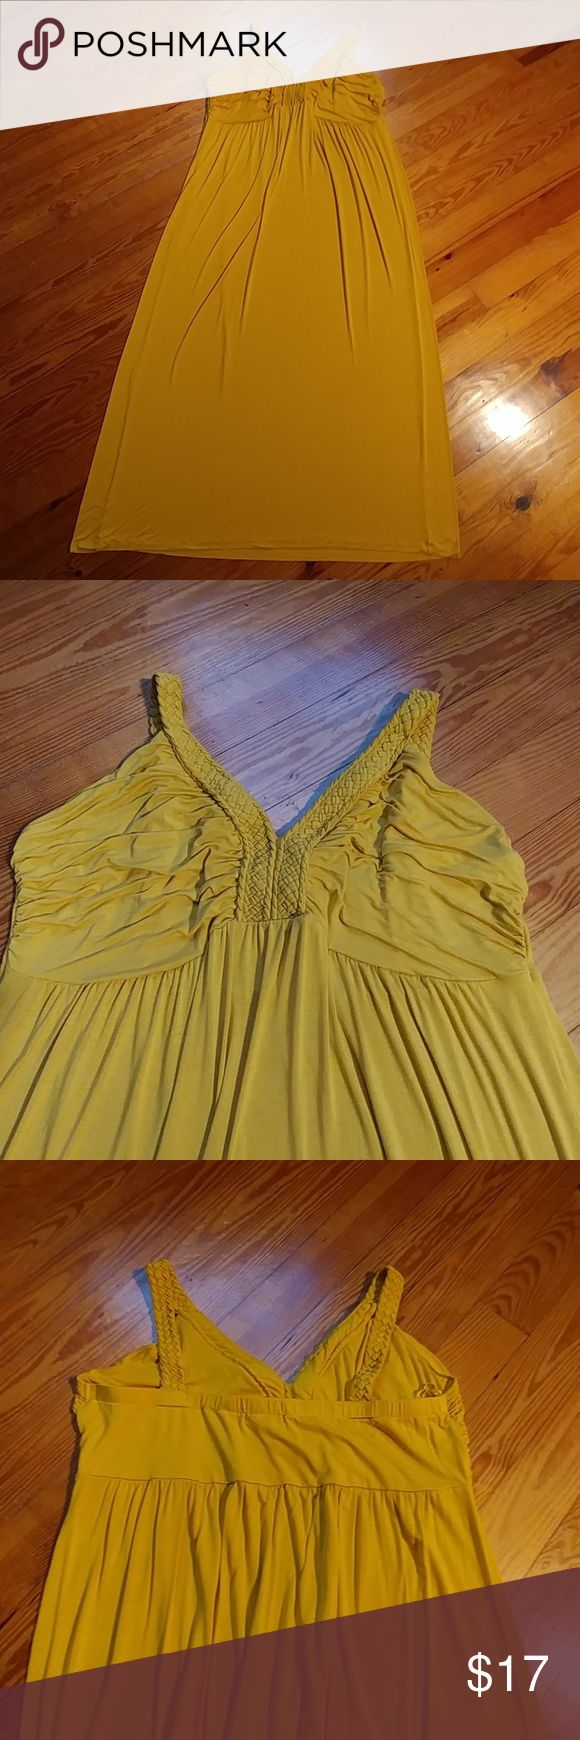 Plus Size Design History Gold Maxi Dress Plus Size Design History. Mustard Gold Maxi Dress.Viscose & spandex. Size 2X. Measurement win from armpit to armpit. Has banded back which allows for great stretch! 55in long from shoulder to hemline. Also soft as butter & excellent condition. Sold as is. Dresses